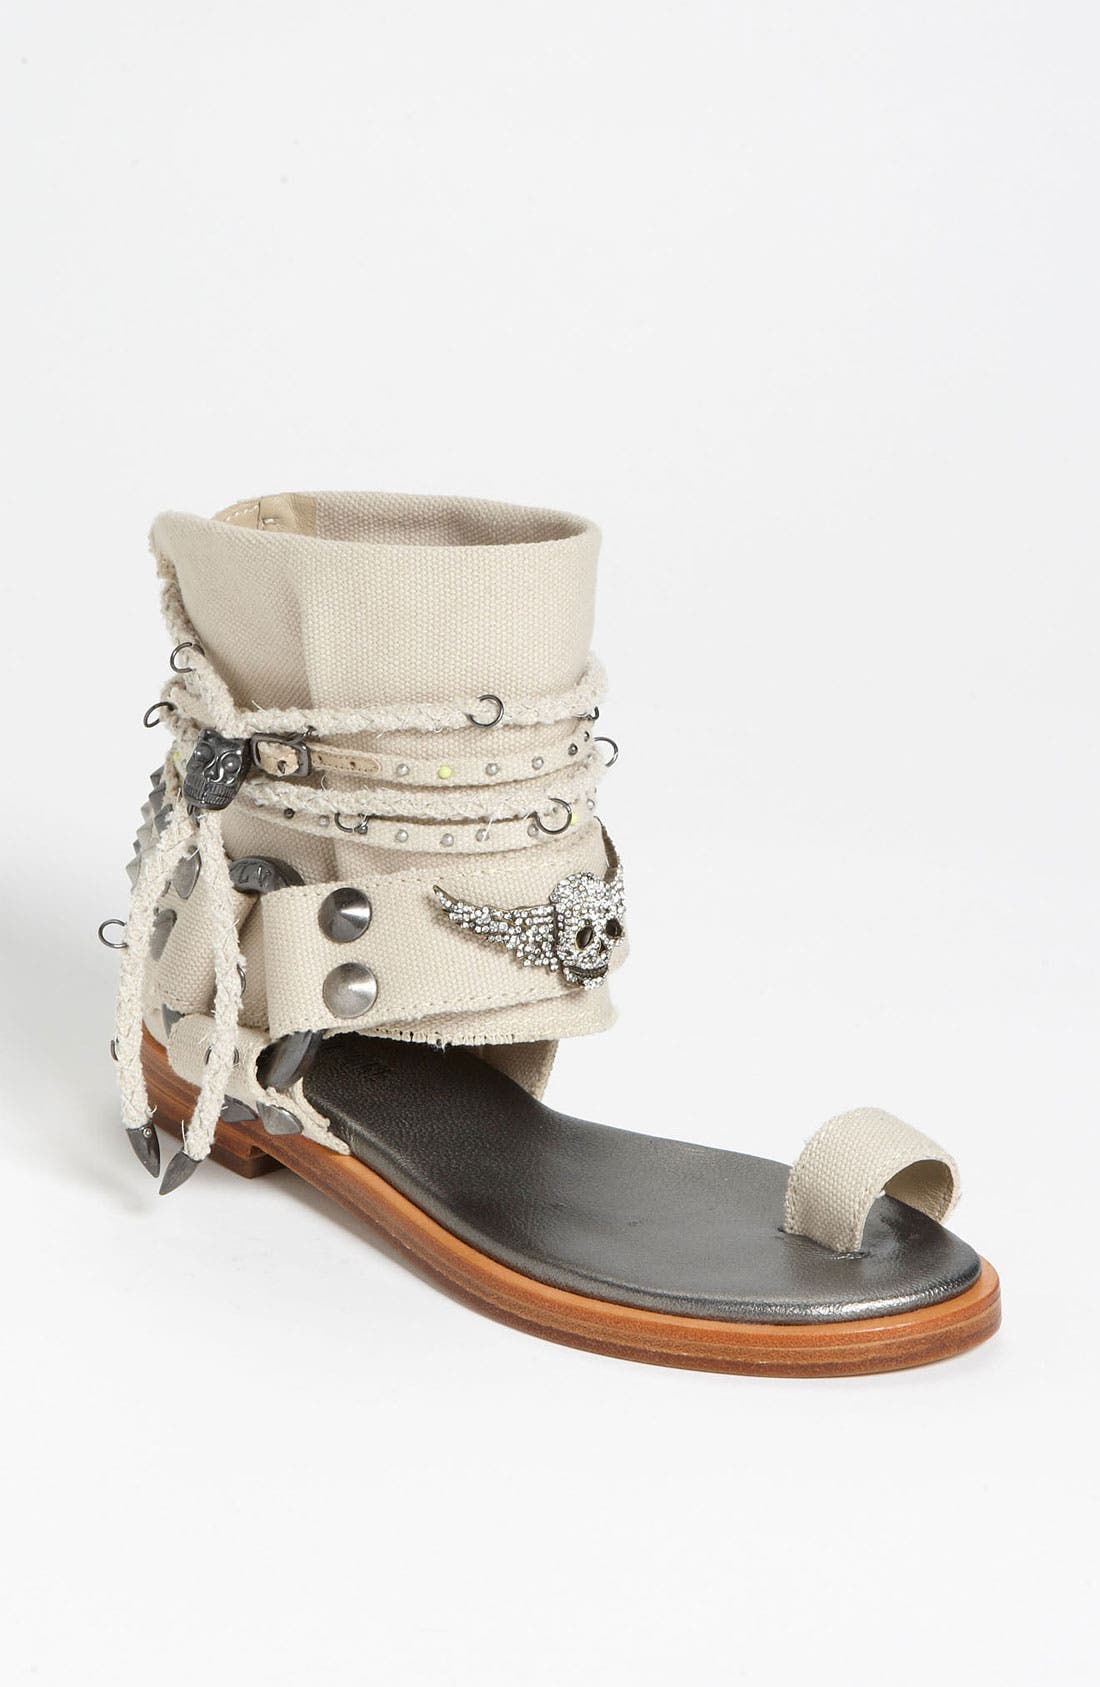 Main Image - Zadig & Voltaire 'Page III' Sandal